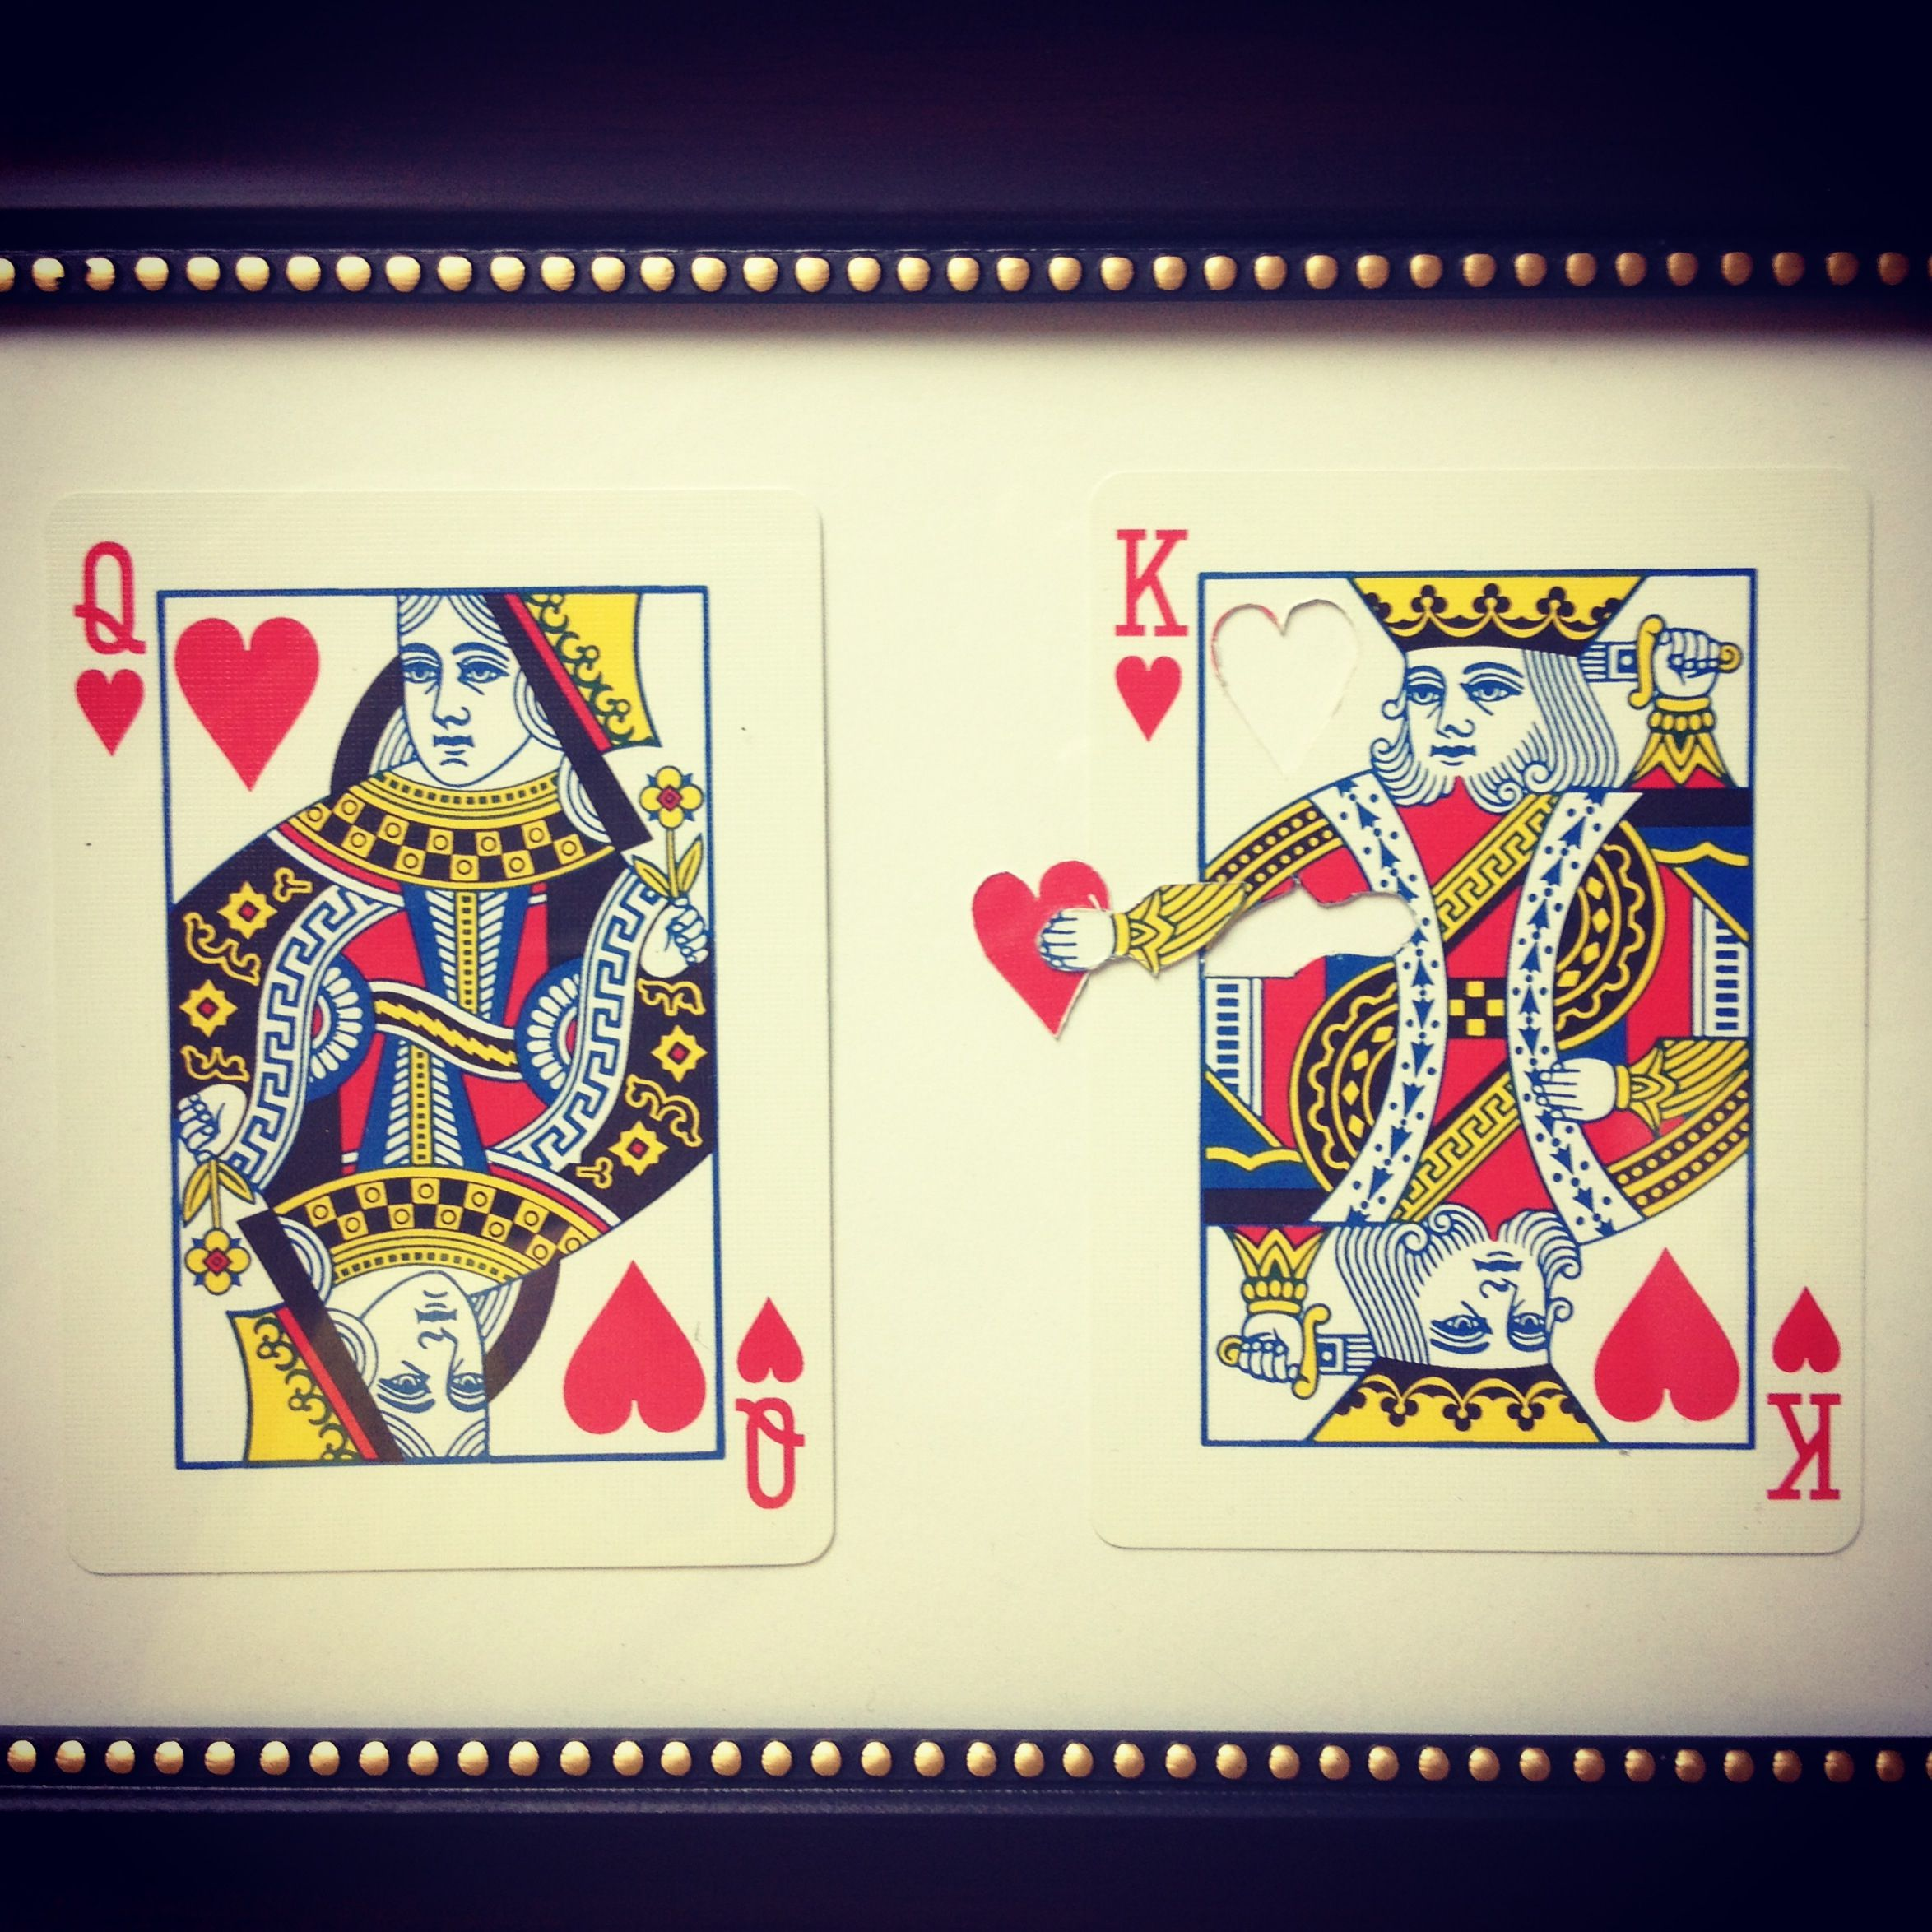 The King of Hearts gives his heart the Queen of his heart. My husband made this for me for Valentine's Day.